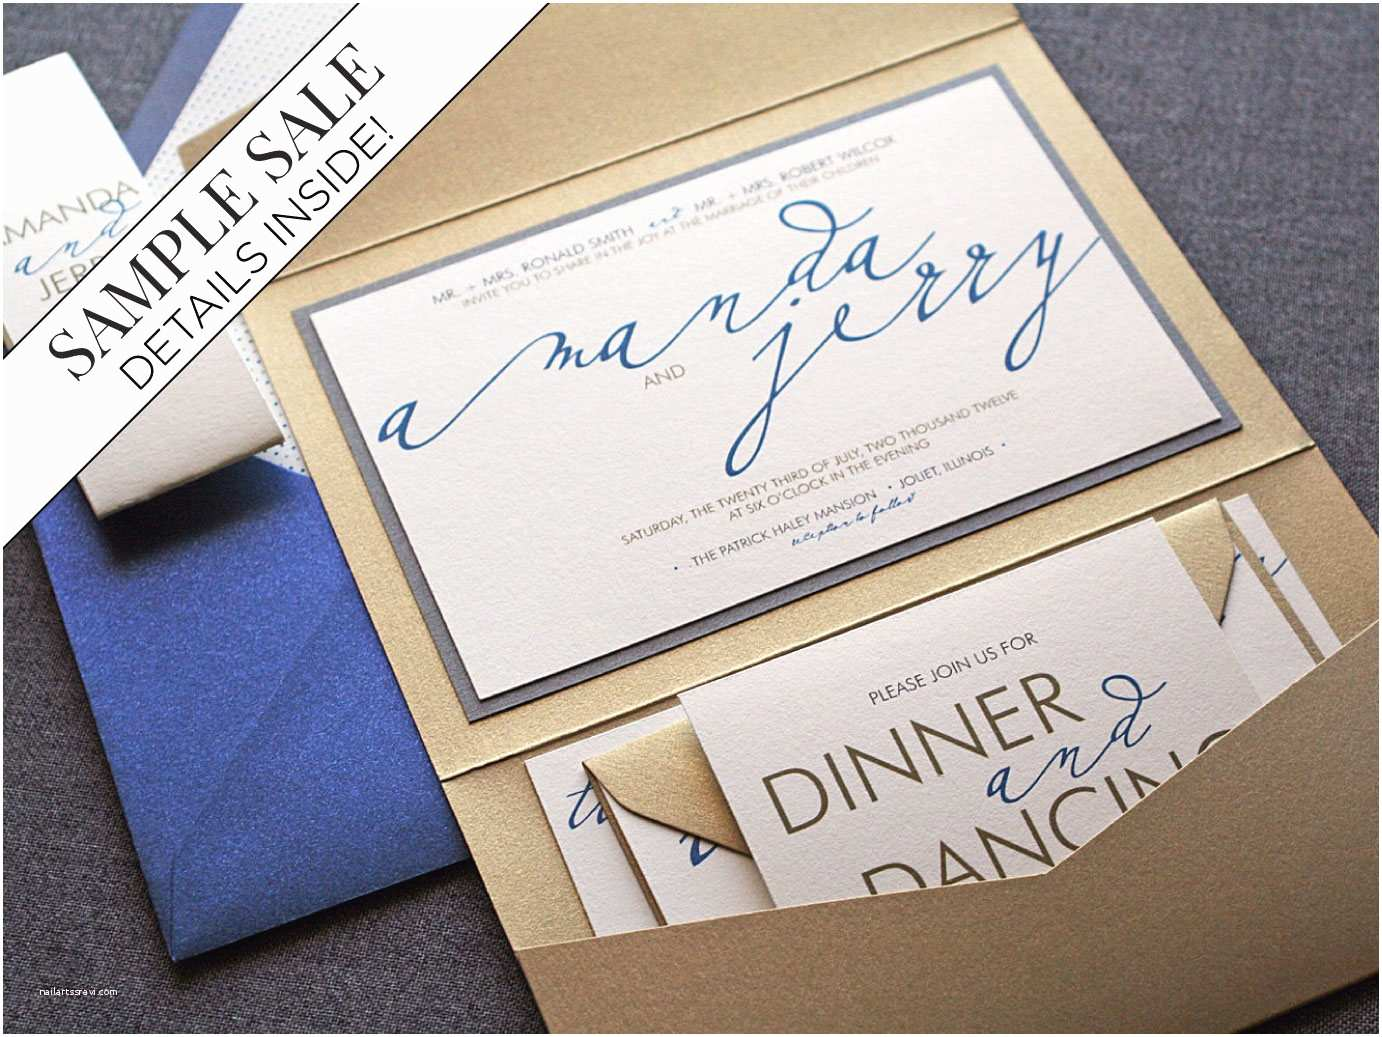 Sapphire Wedding Invitations Sapphire Blue Wedding Invitations Pocket Fold Invites